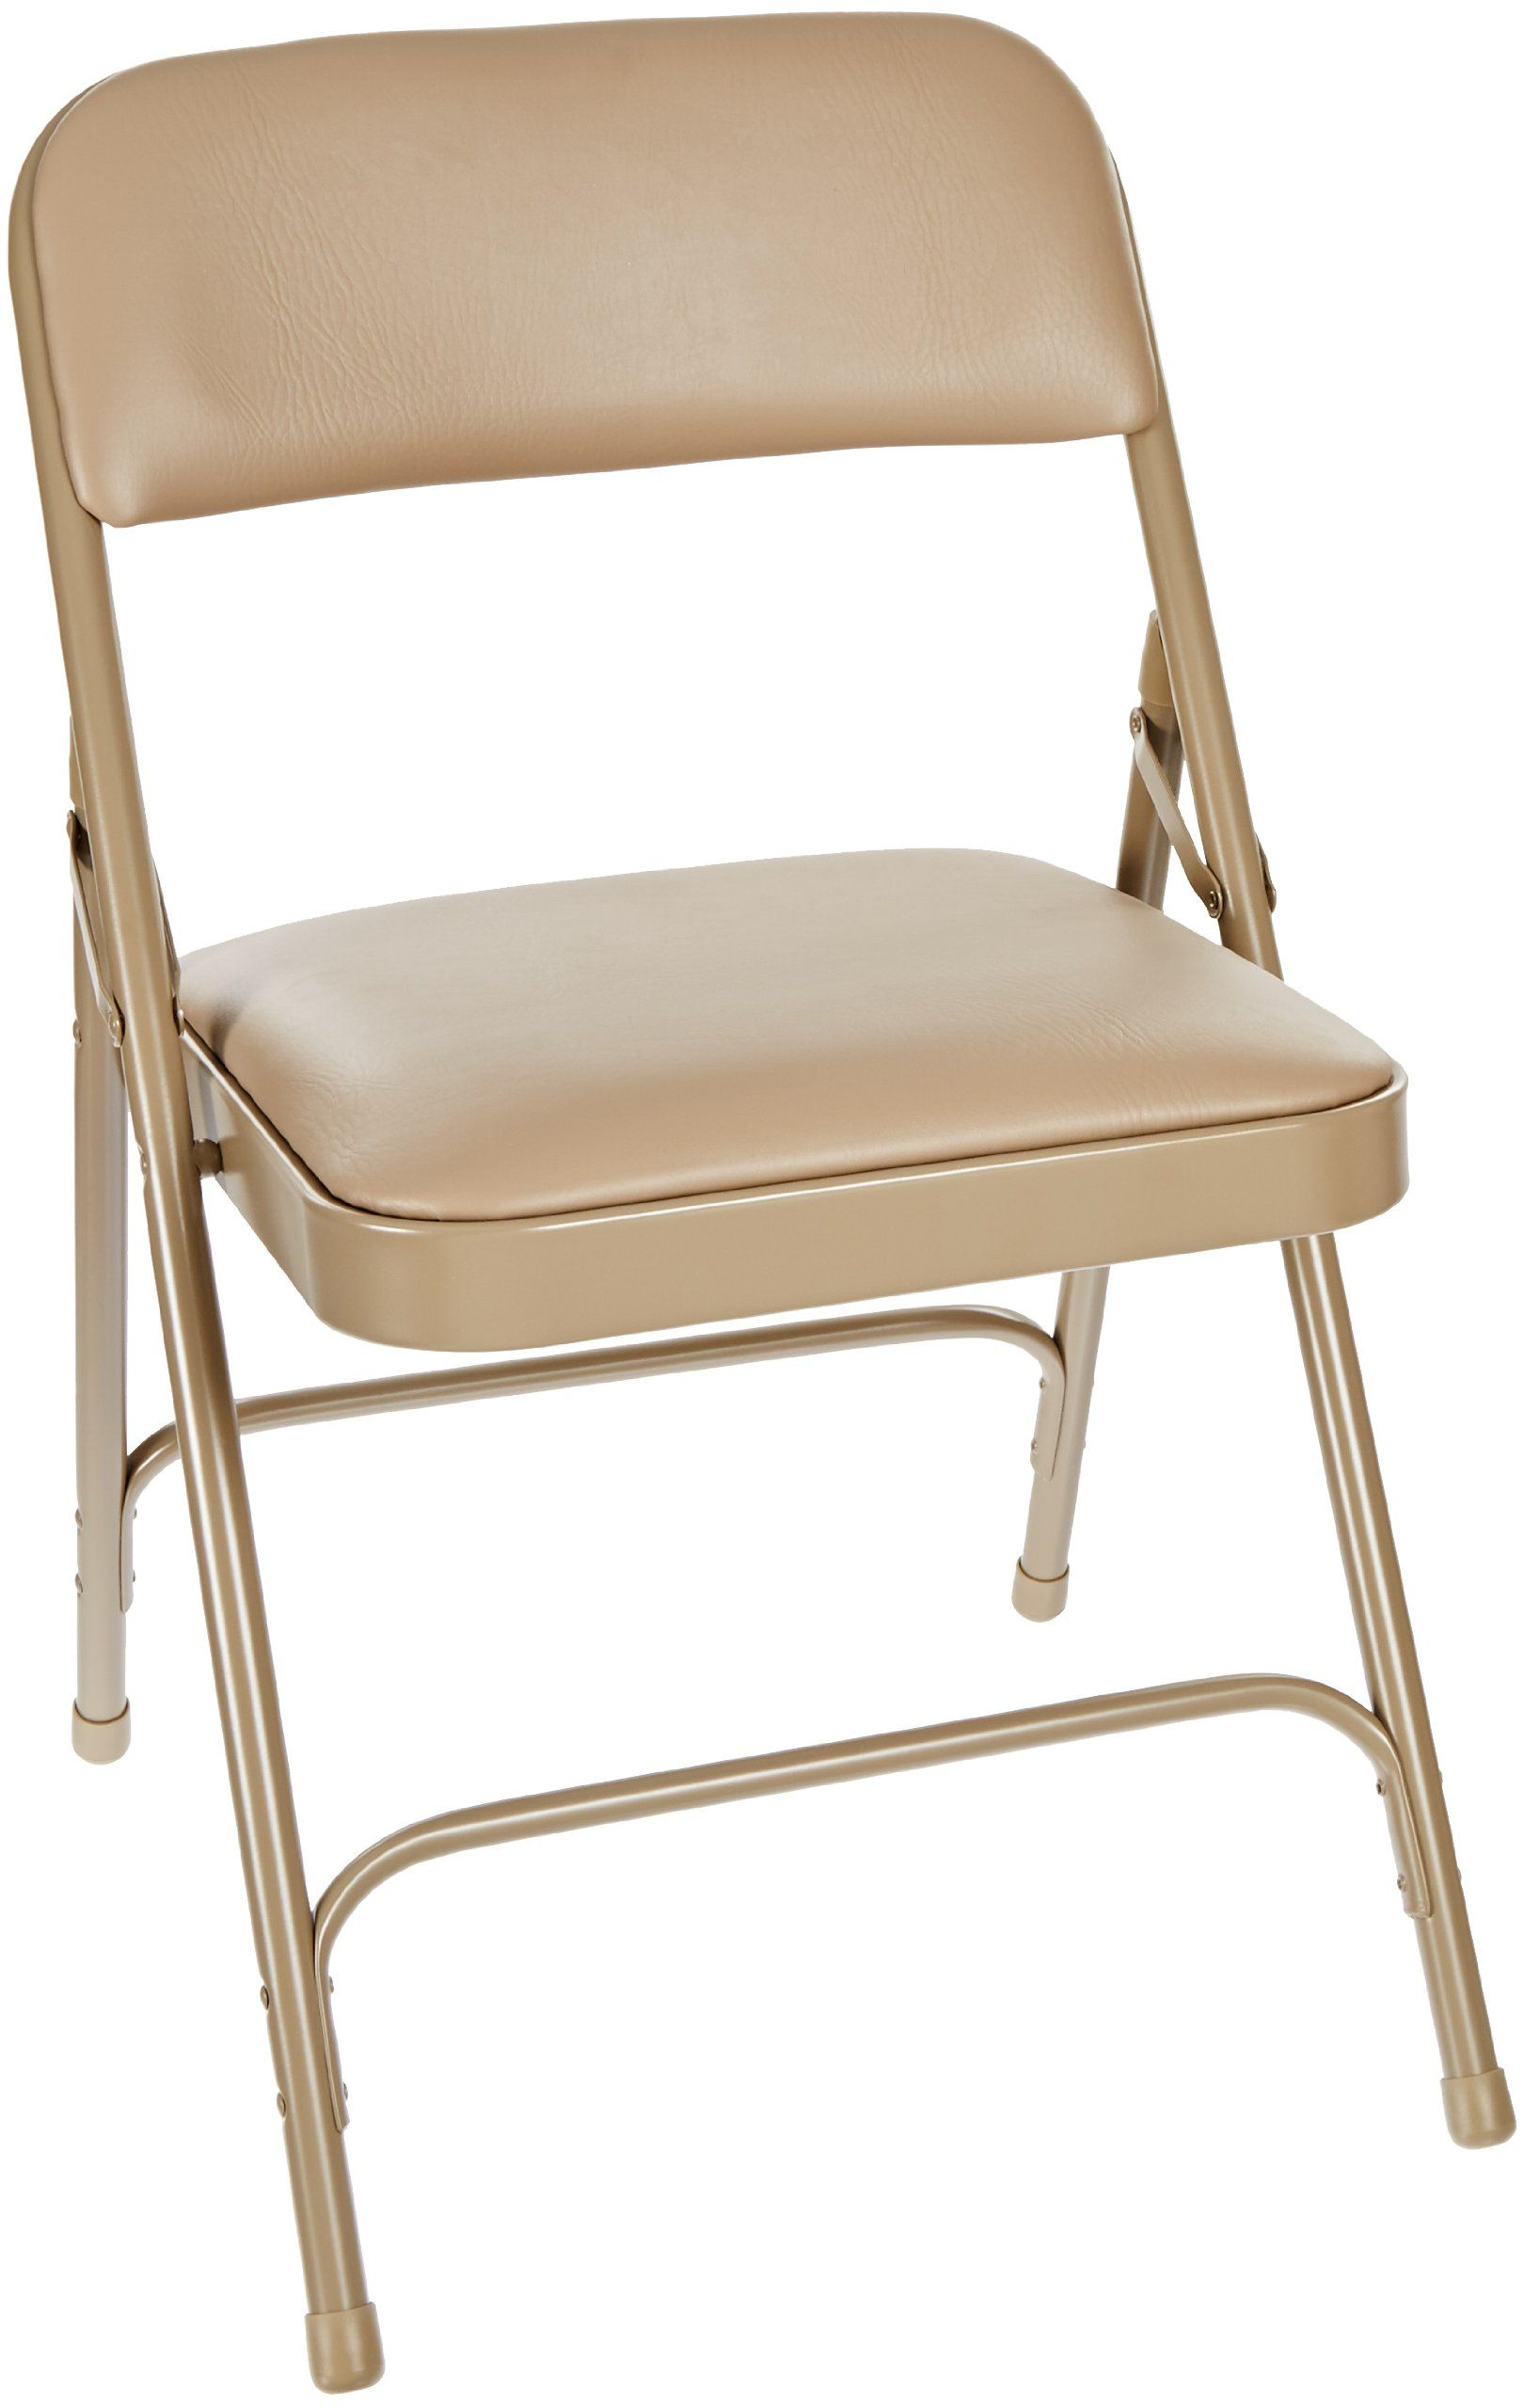 steel vinyl chair behind the national public seating 1200 series frame upholstered premium seat and back folding with double brace 480 lbs capacity french beige